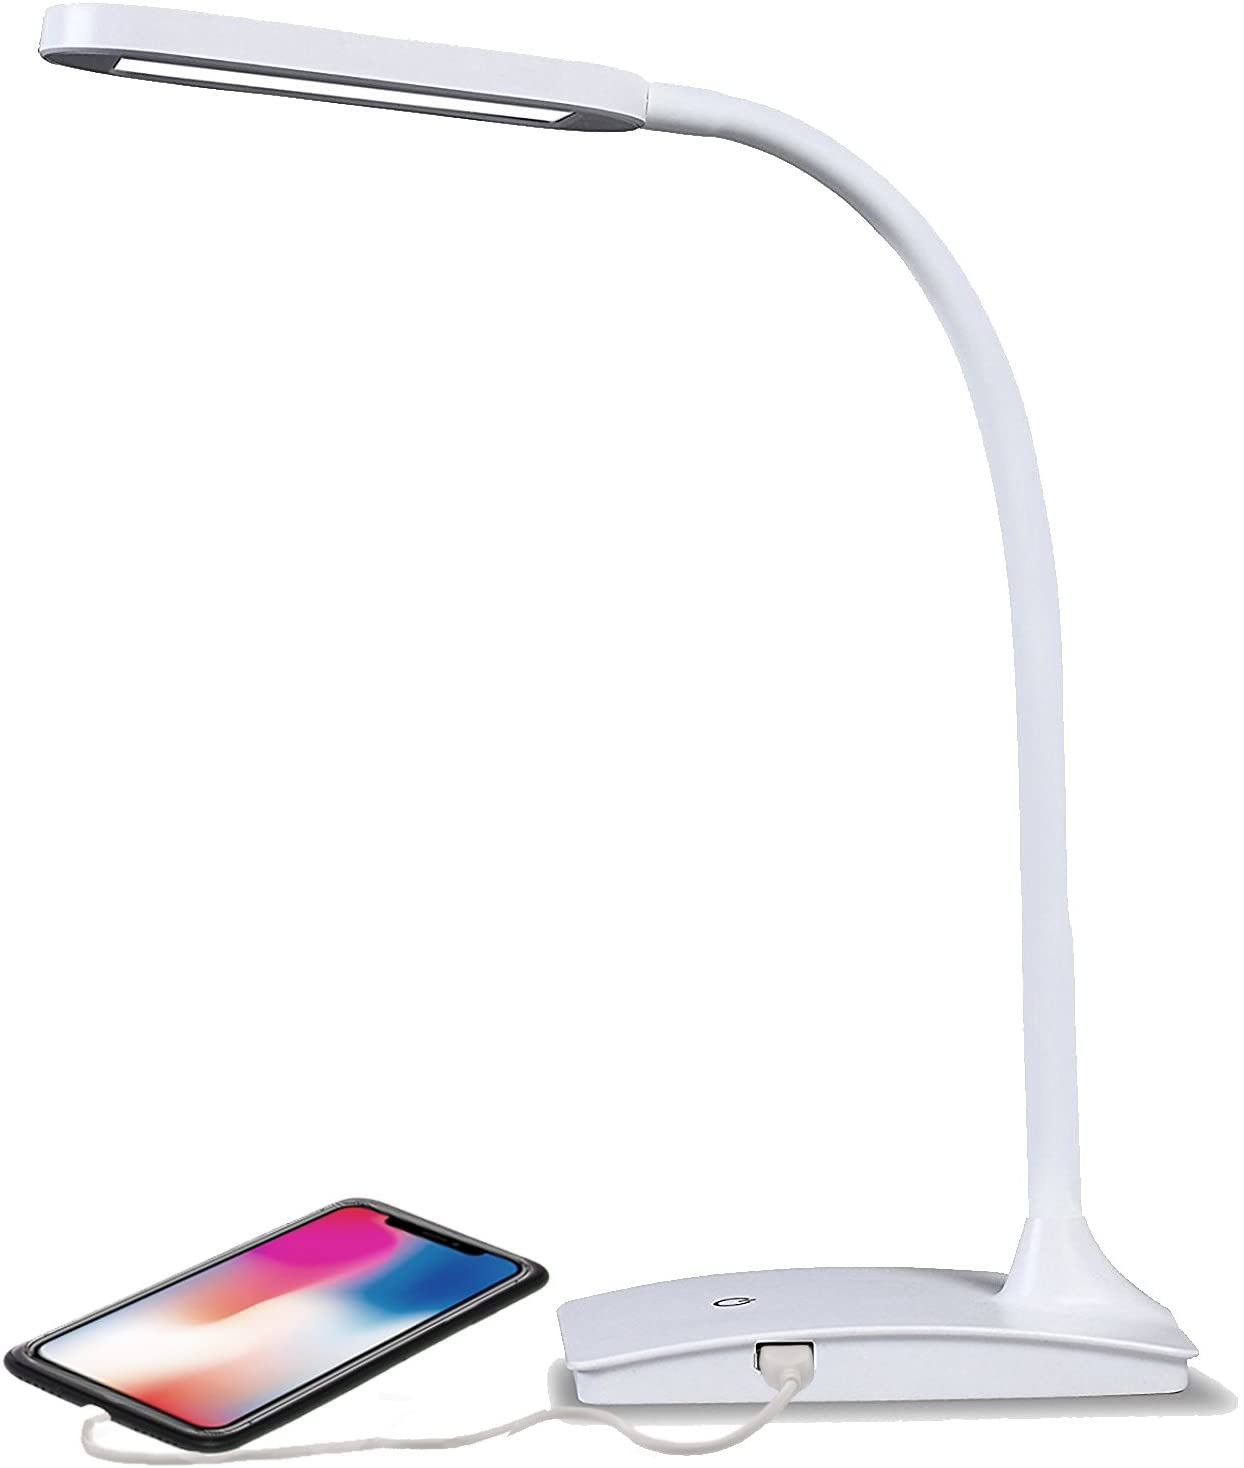 White led desk lamp, built-in usb port, 3 level touch dimmer, adjustable neck